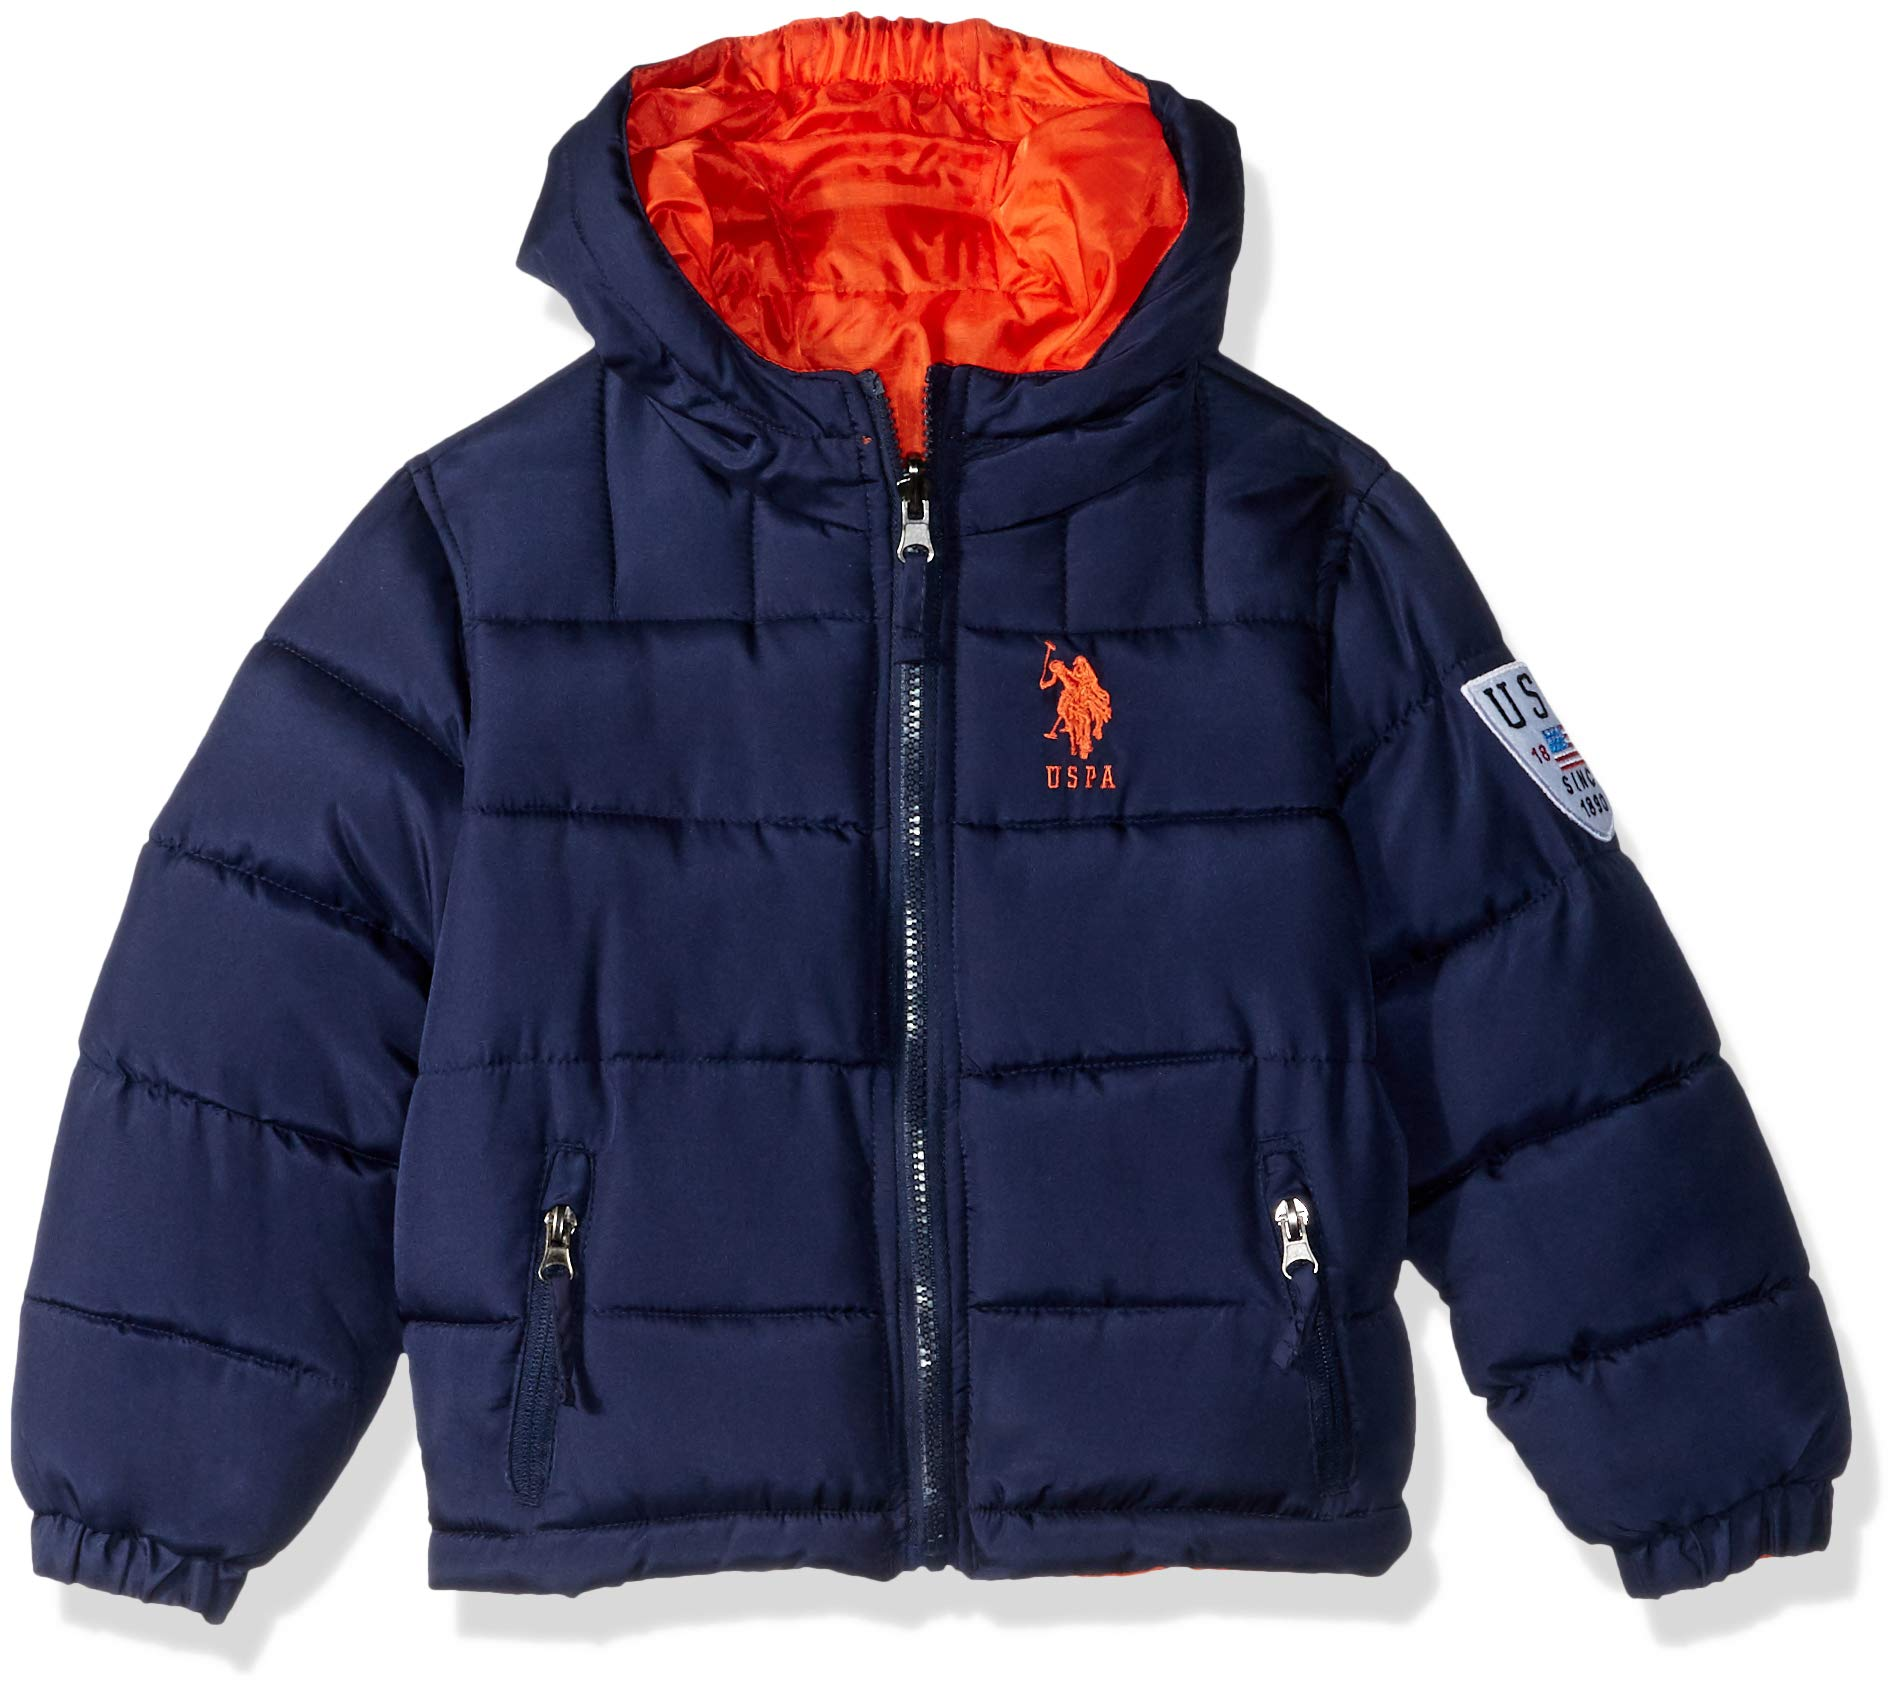 US Polo Association Boys' Big Reversible Bubble Jacket, Navy/Orange, 10/12